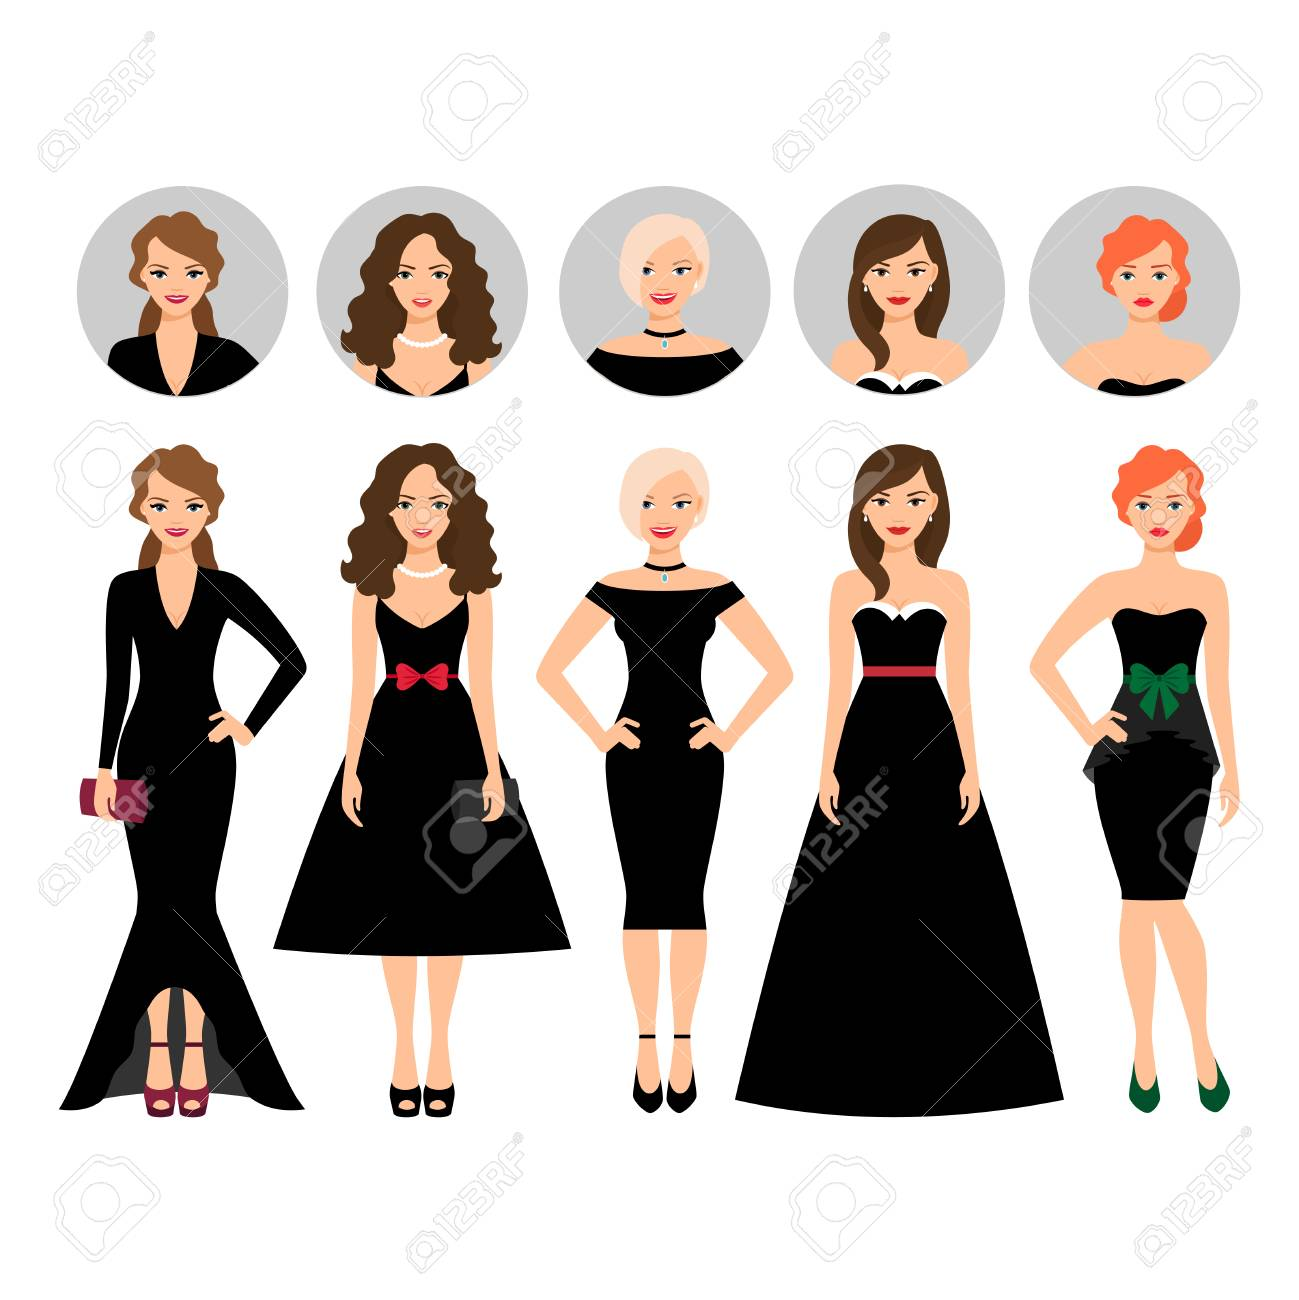 5ccb0da4fa Young woman in different black dresses vector illustration with..